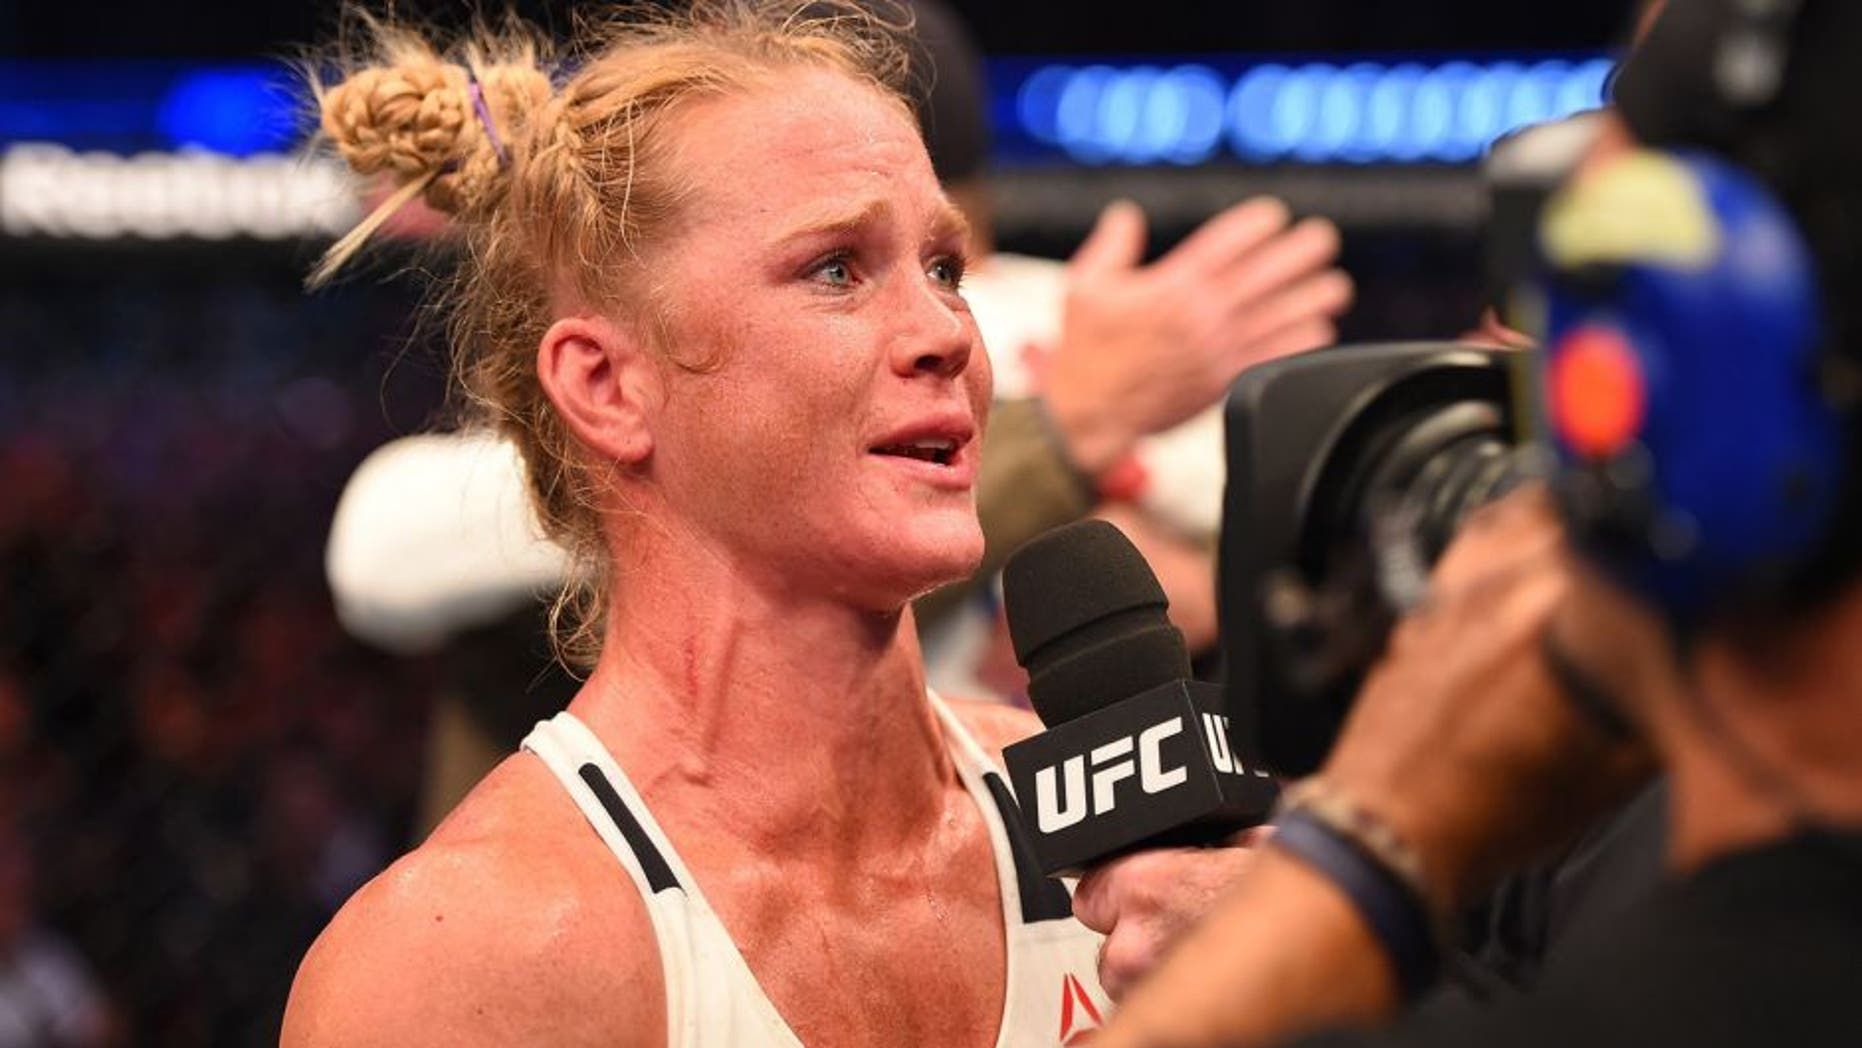 MELBOURNE, AUSTRALIA - NOVEMBER 15: Holly Holm is interviewed by Joe Rogan after her second round KO (head kick and punches) against Ronda Rousey (not pictured) to win their UFC women's bantamweight championship bout during the UFC 193 event at Etihad Stadium on November 15, 2015 in Melbourne, Australia. (Photo by Josh Hedges/Zuffa LLC/Zuffa LLC via Getty Images)